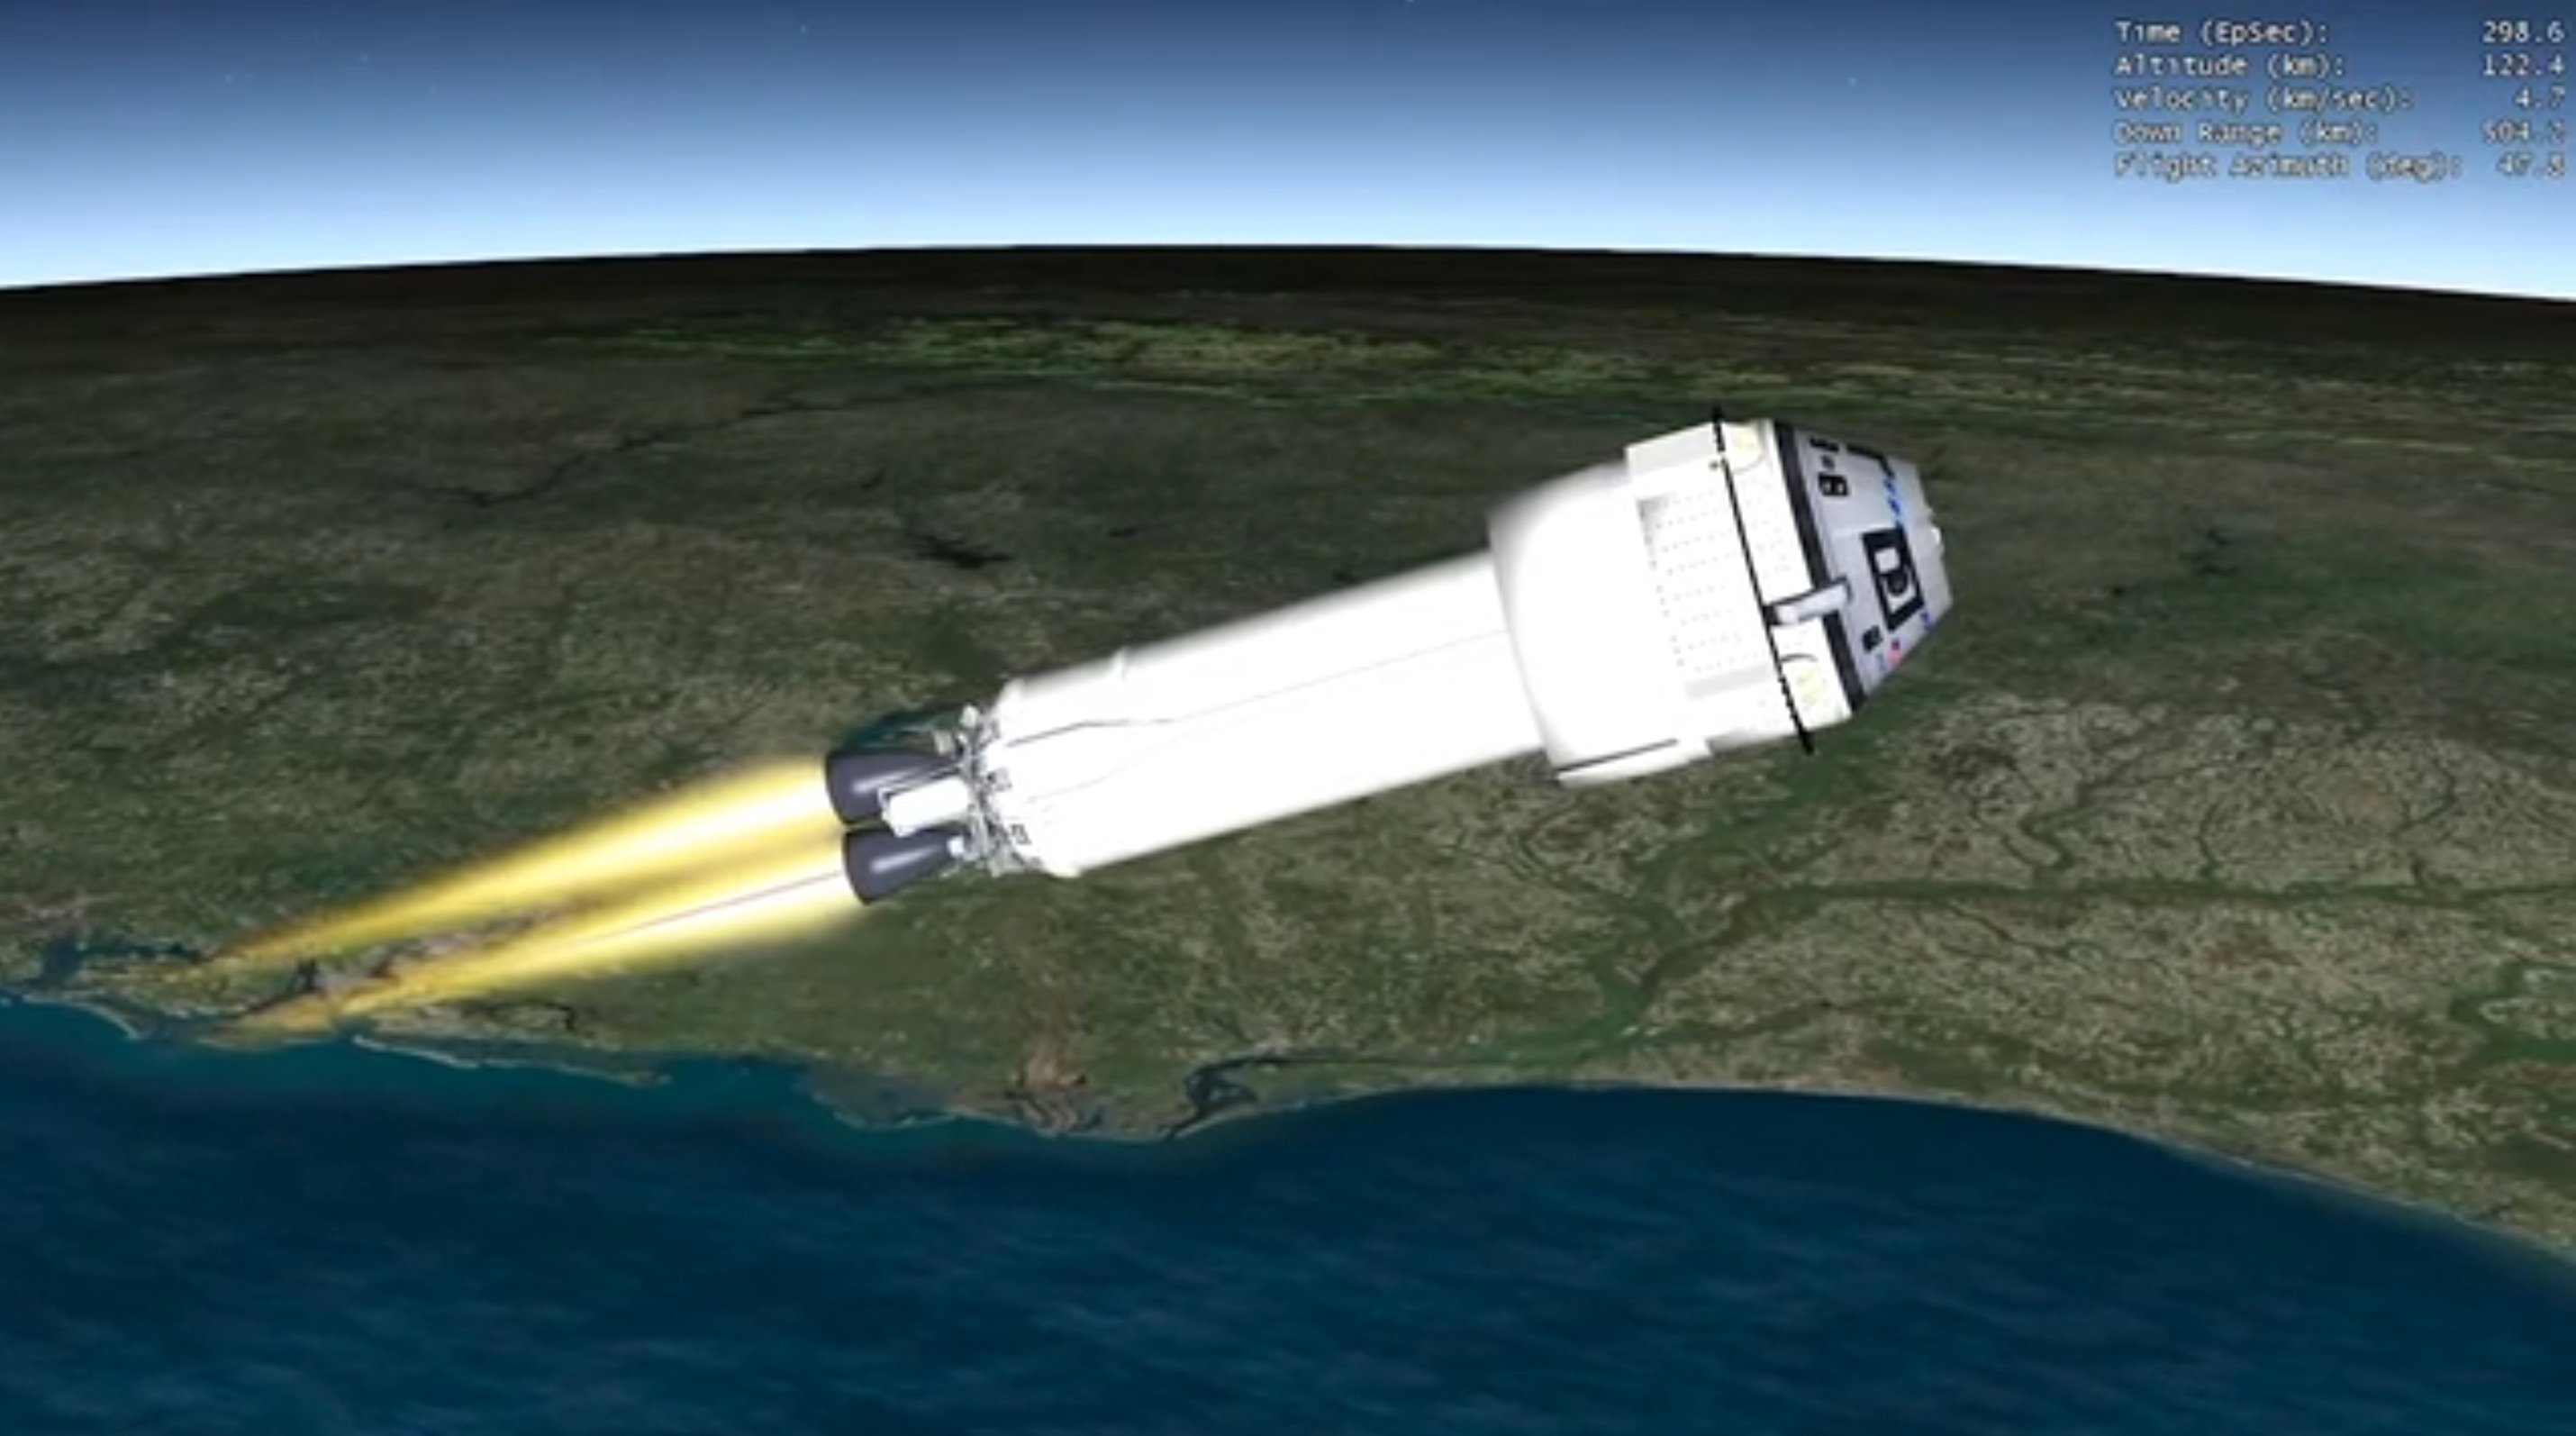 The Dual Engine Centaur pushes Starliner to space.